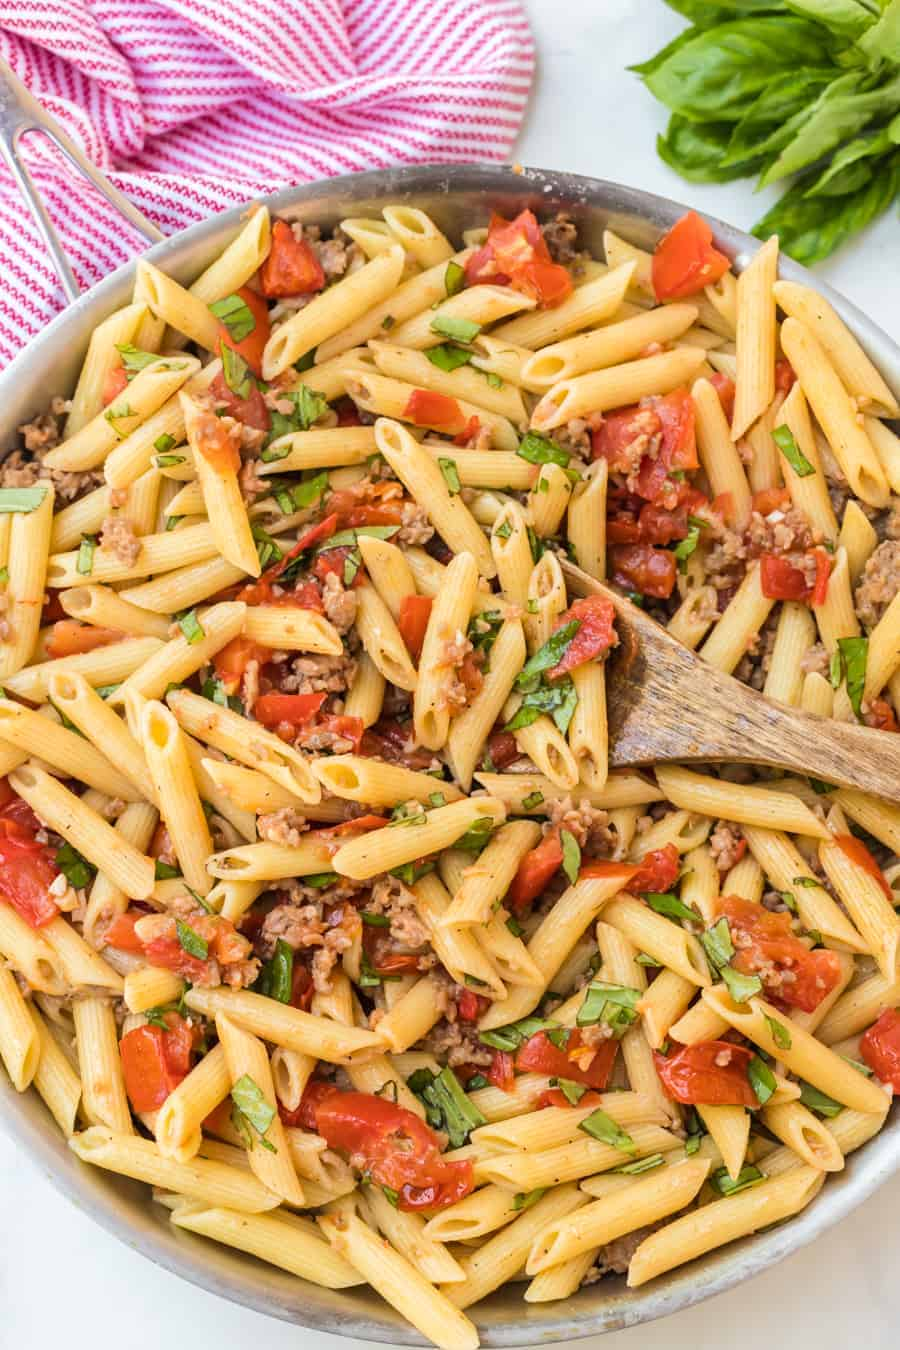 This 30 minute simple roasted tomato and sausage pasta recipe is the easiest comfort food you will ever make, and it tastes wonderful, too! If you appreciate Italian cuisine, this pasta dish is the perfect meal. And literally anyone can make it in no time! It's heaven on a plate from my kitchen to yours. #pasta #pastadinners #dinnerideas #italianfood #easydinners #comfortfood #italiandinners #roastedtomatoes #sausagepasta #penne